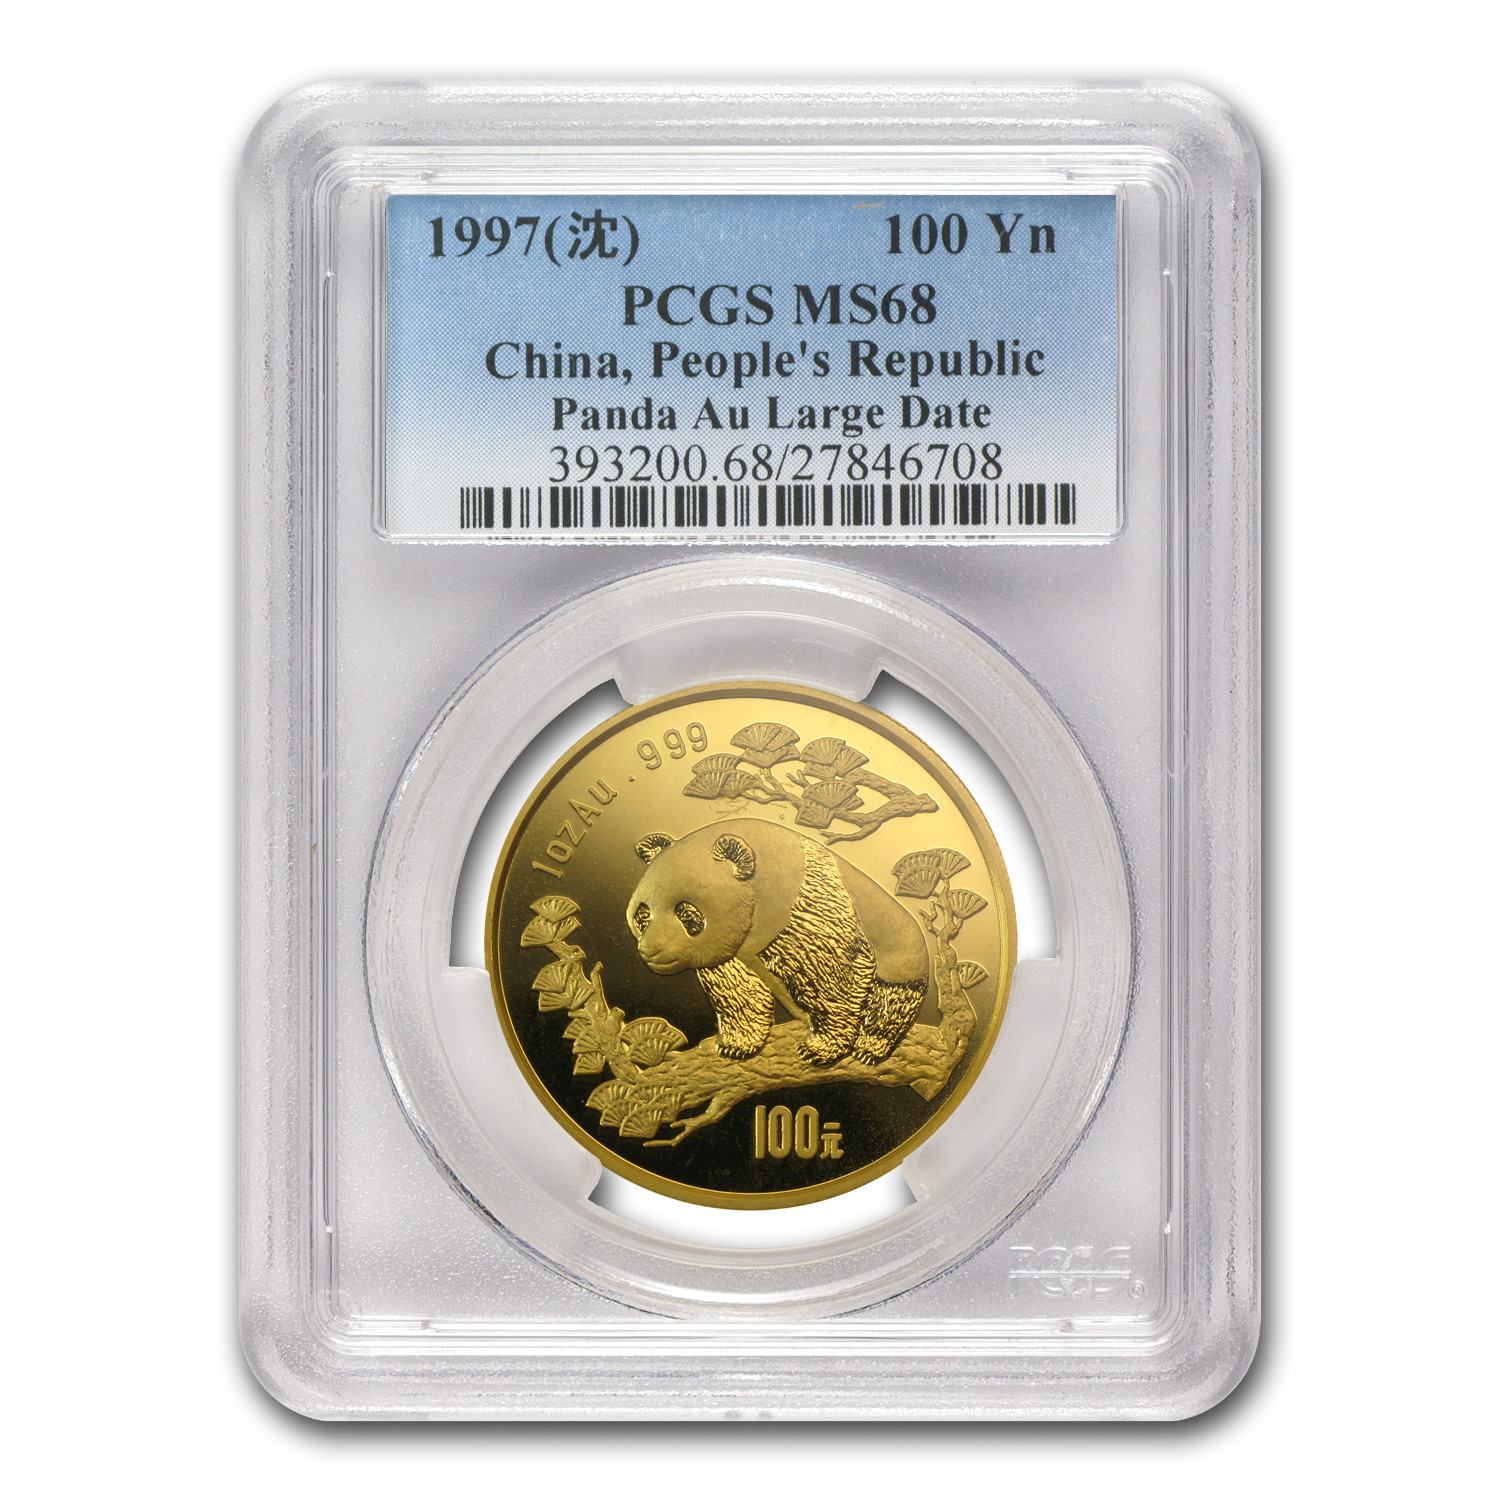 1997 China 1 oz Gold Panda Large Date MS-68 PCGS